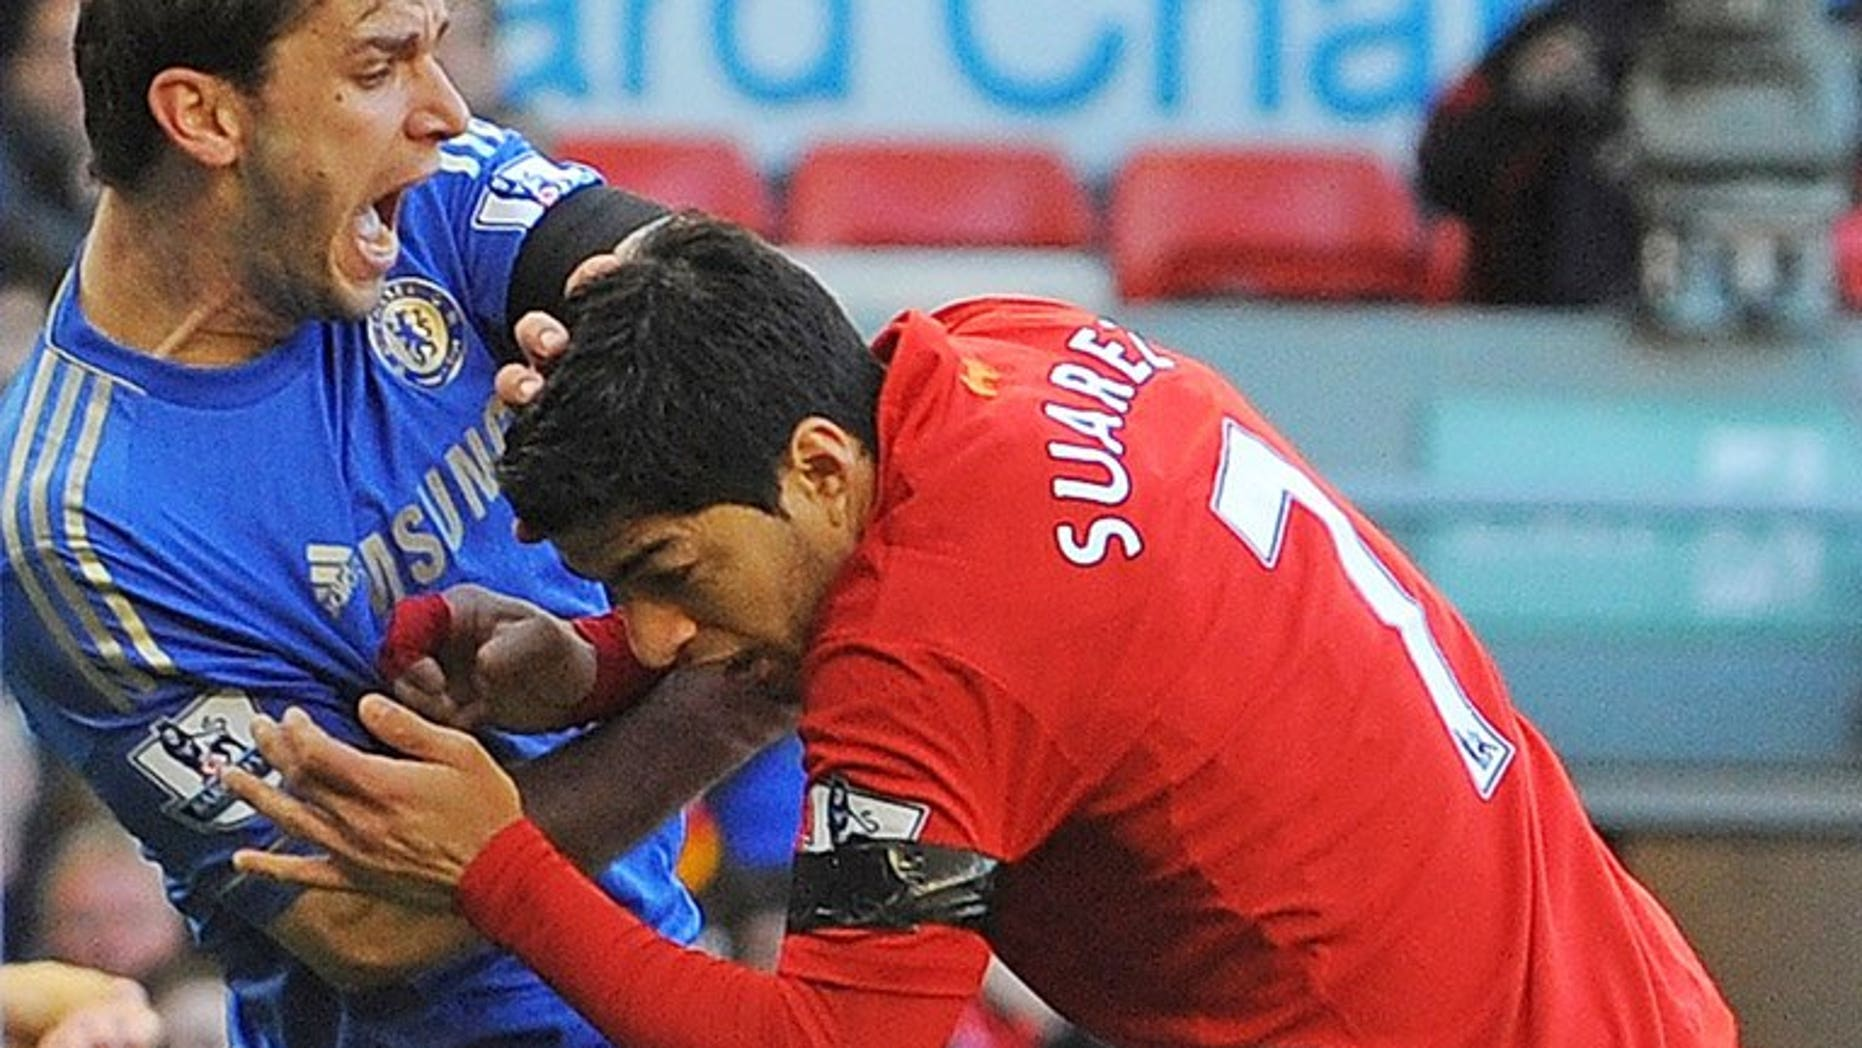 Branislav Ivanovic (left) recoils after being bitten by Luis Suarez at Anfield on April 21. Unsettled Liverpool striker Luis Suarez made his return to Anfield on Saturday, saluting fans from beside the pitch prior to his side's opening Premier League game against Stoke City.